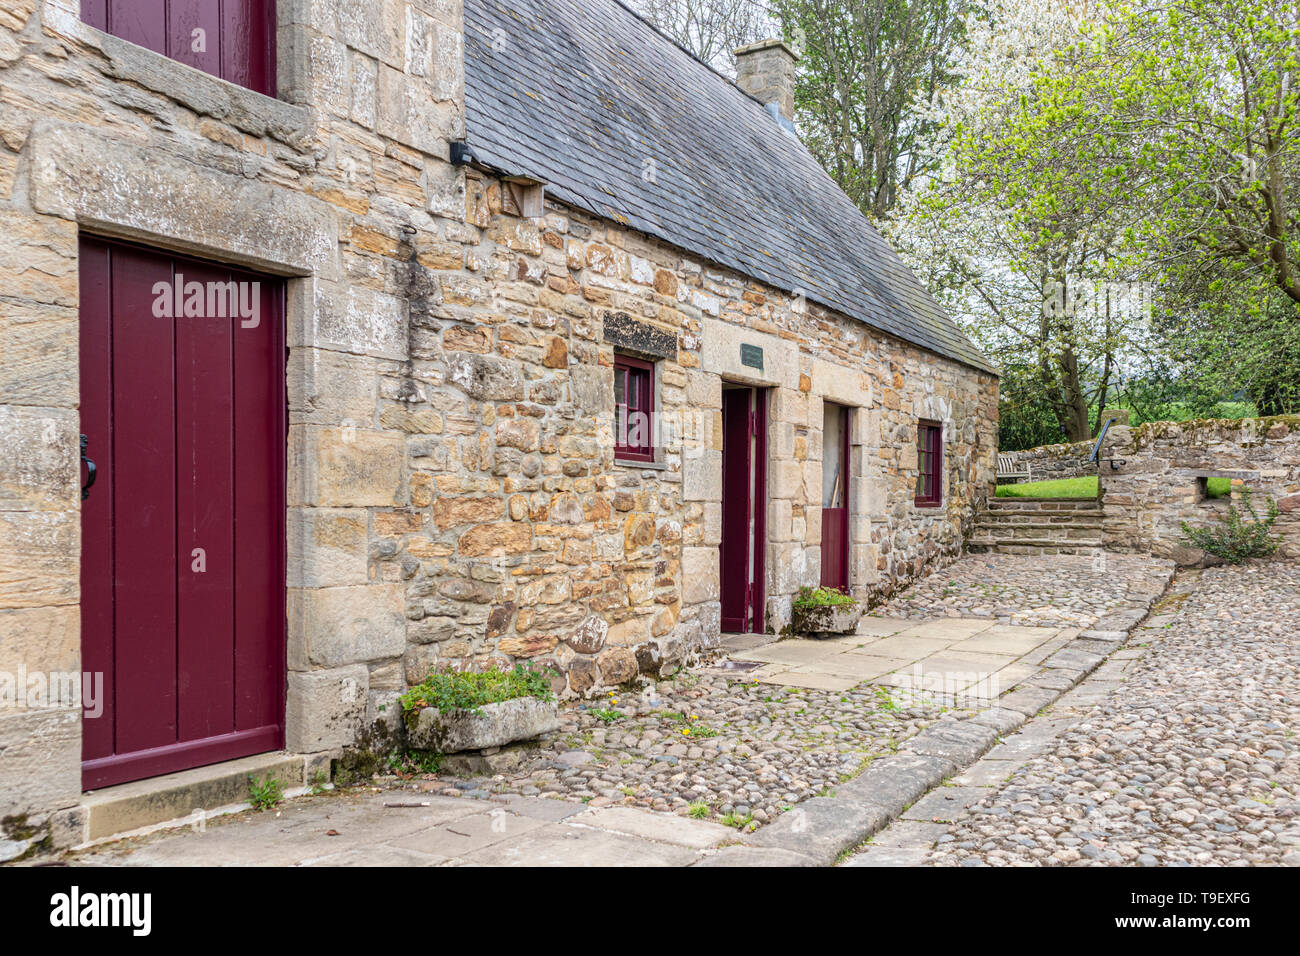 Cherryburn - a cottage which was the birthplace of Thomas Bewick,  Mickley, Northumberland UK - Stock Image